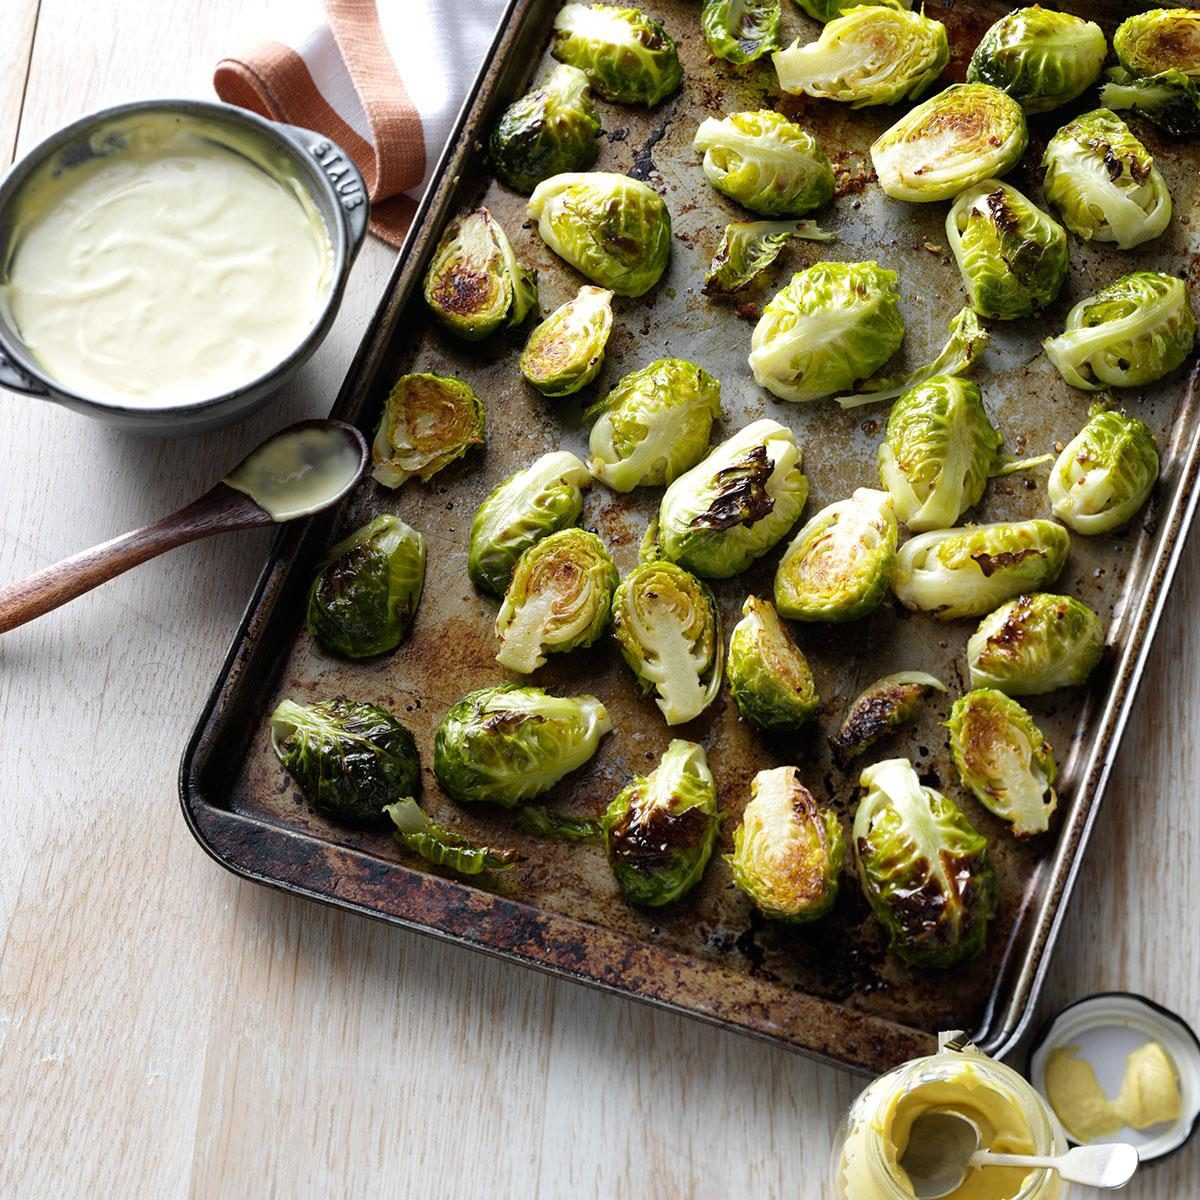 Garlic-Roasted Brussels Sprouts with Mustard Sauce